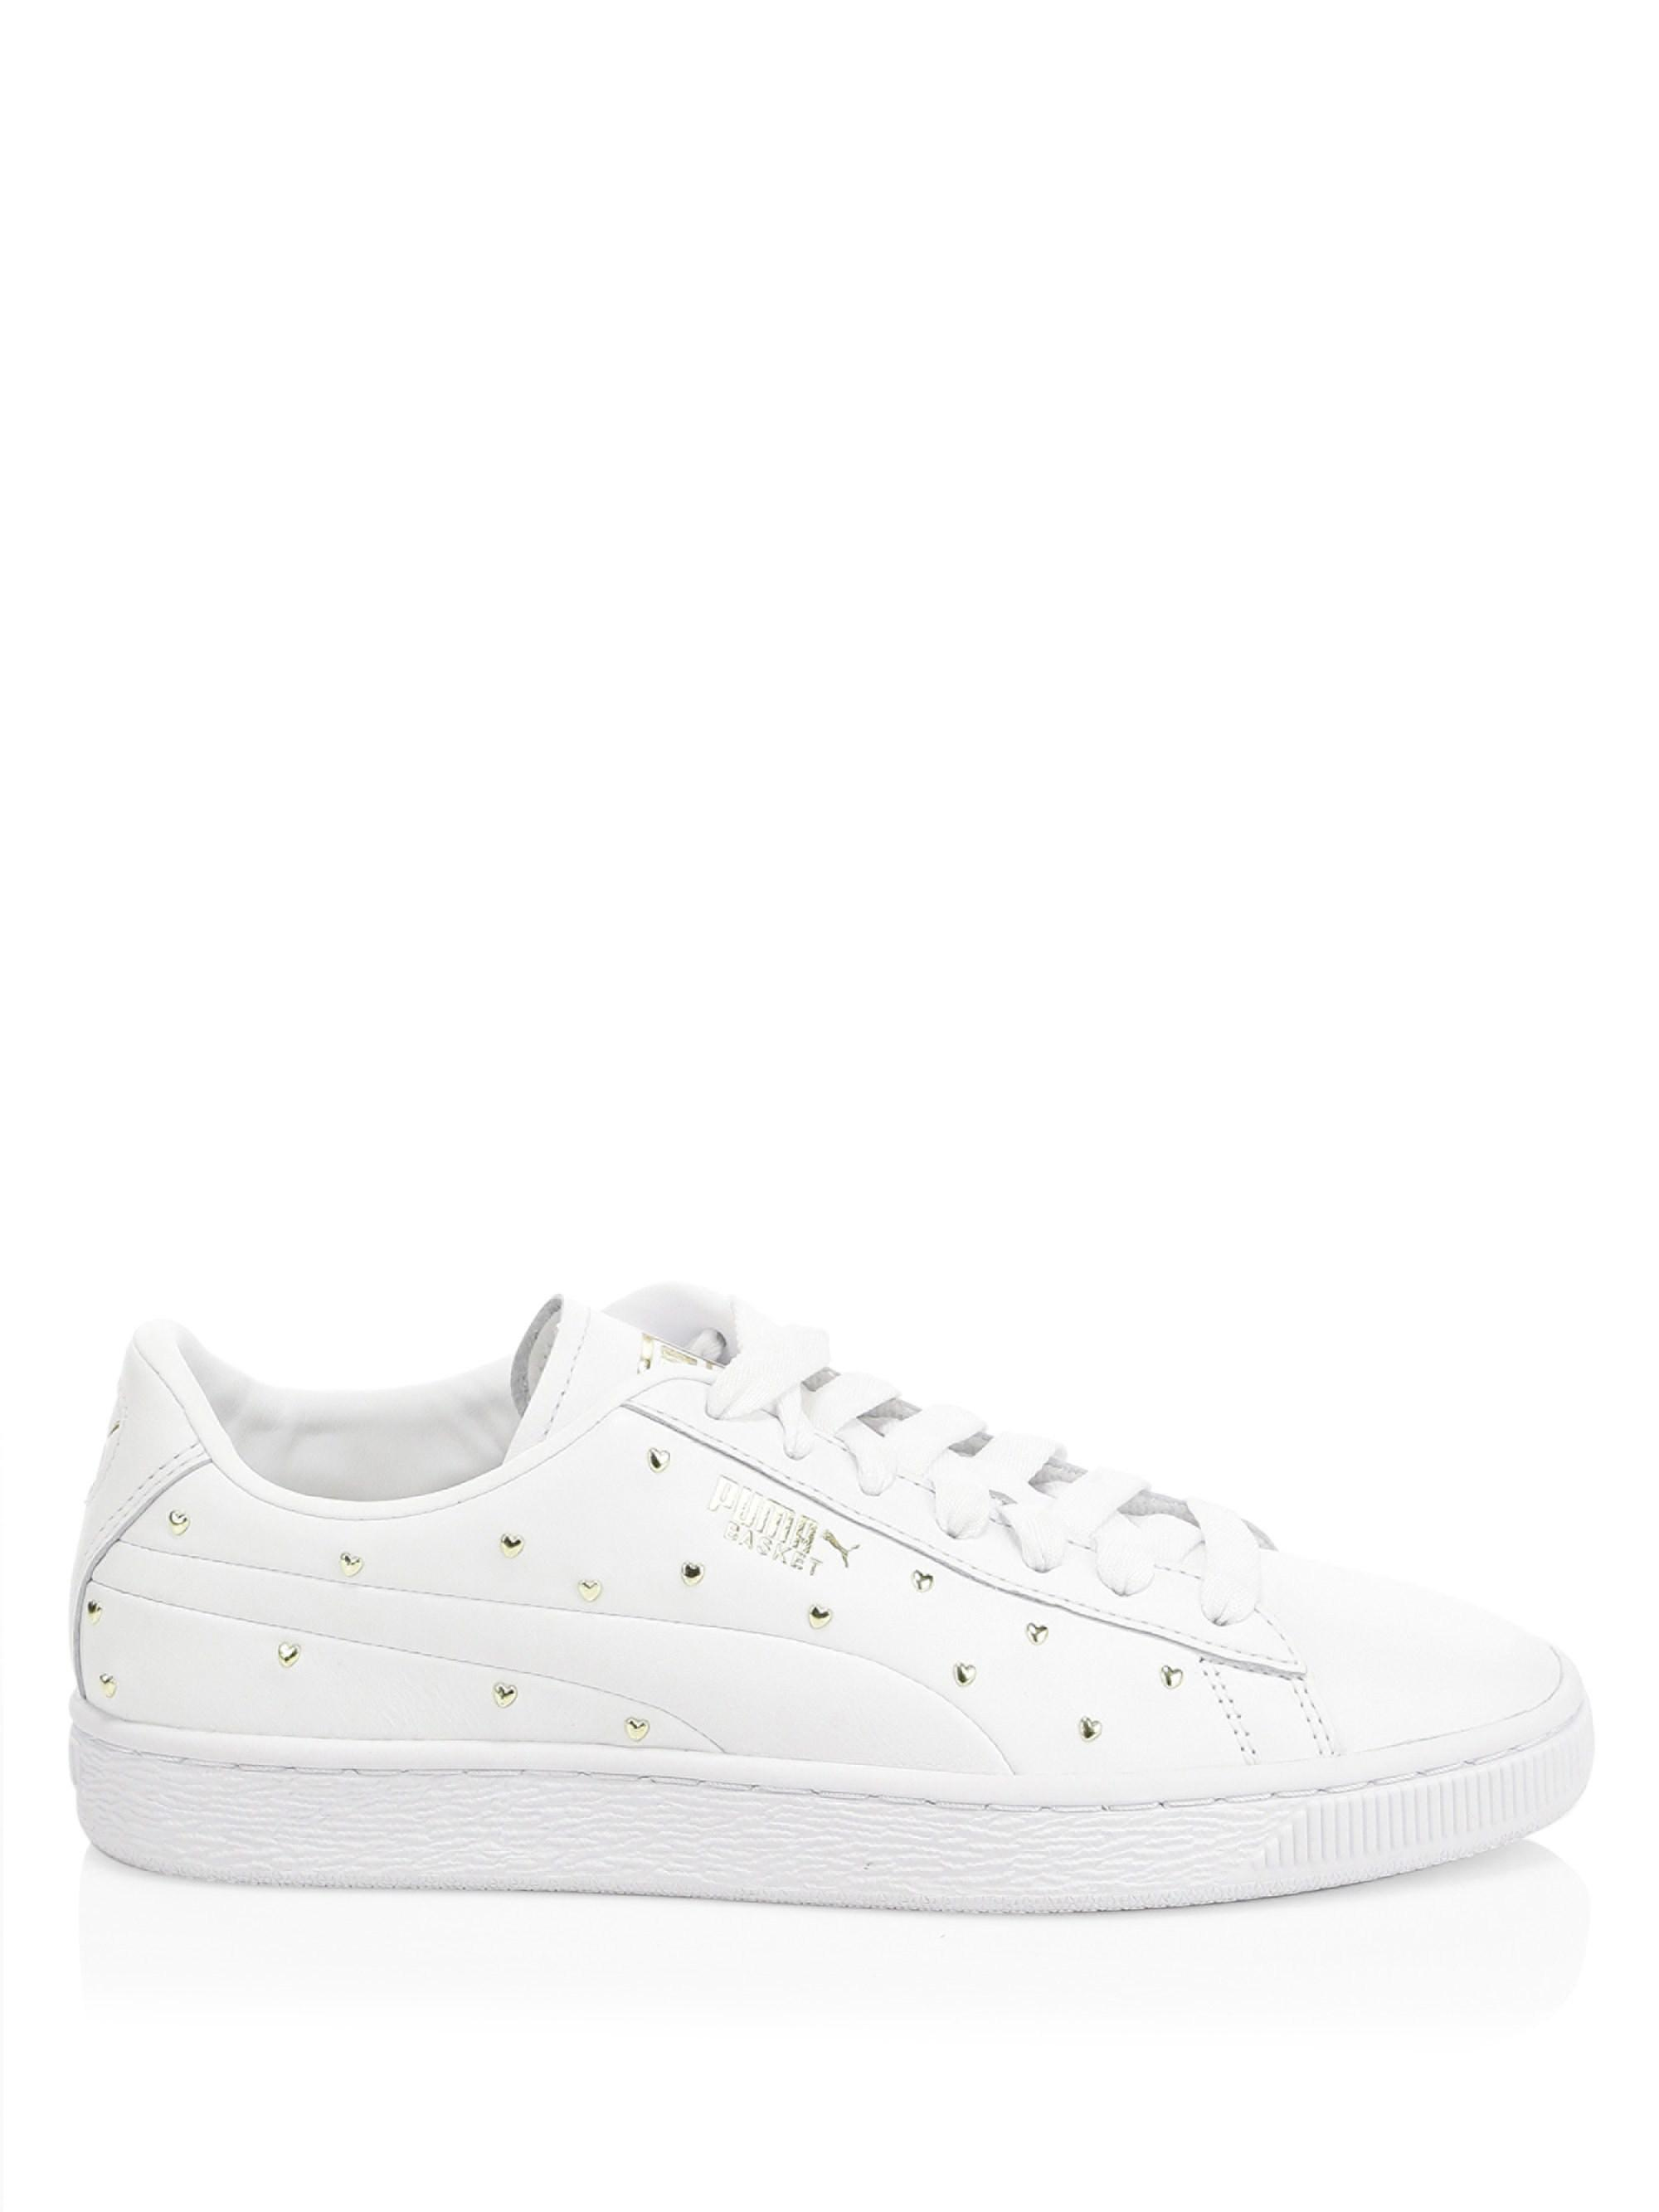 puma basket stud sneakers